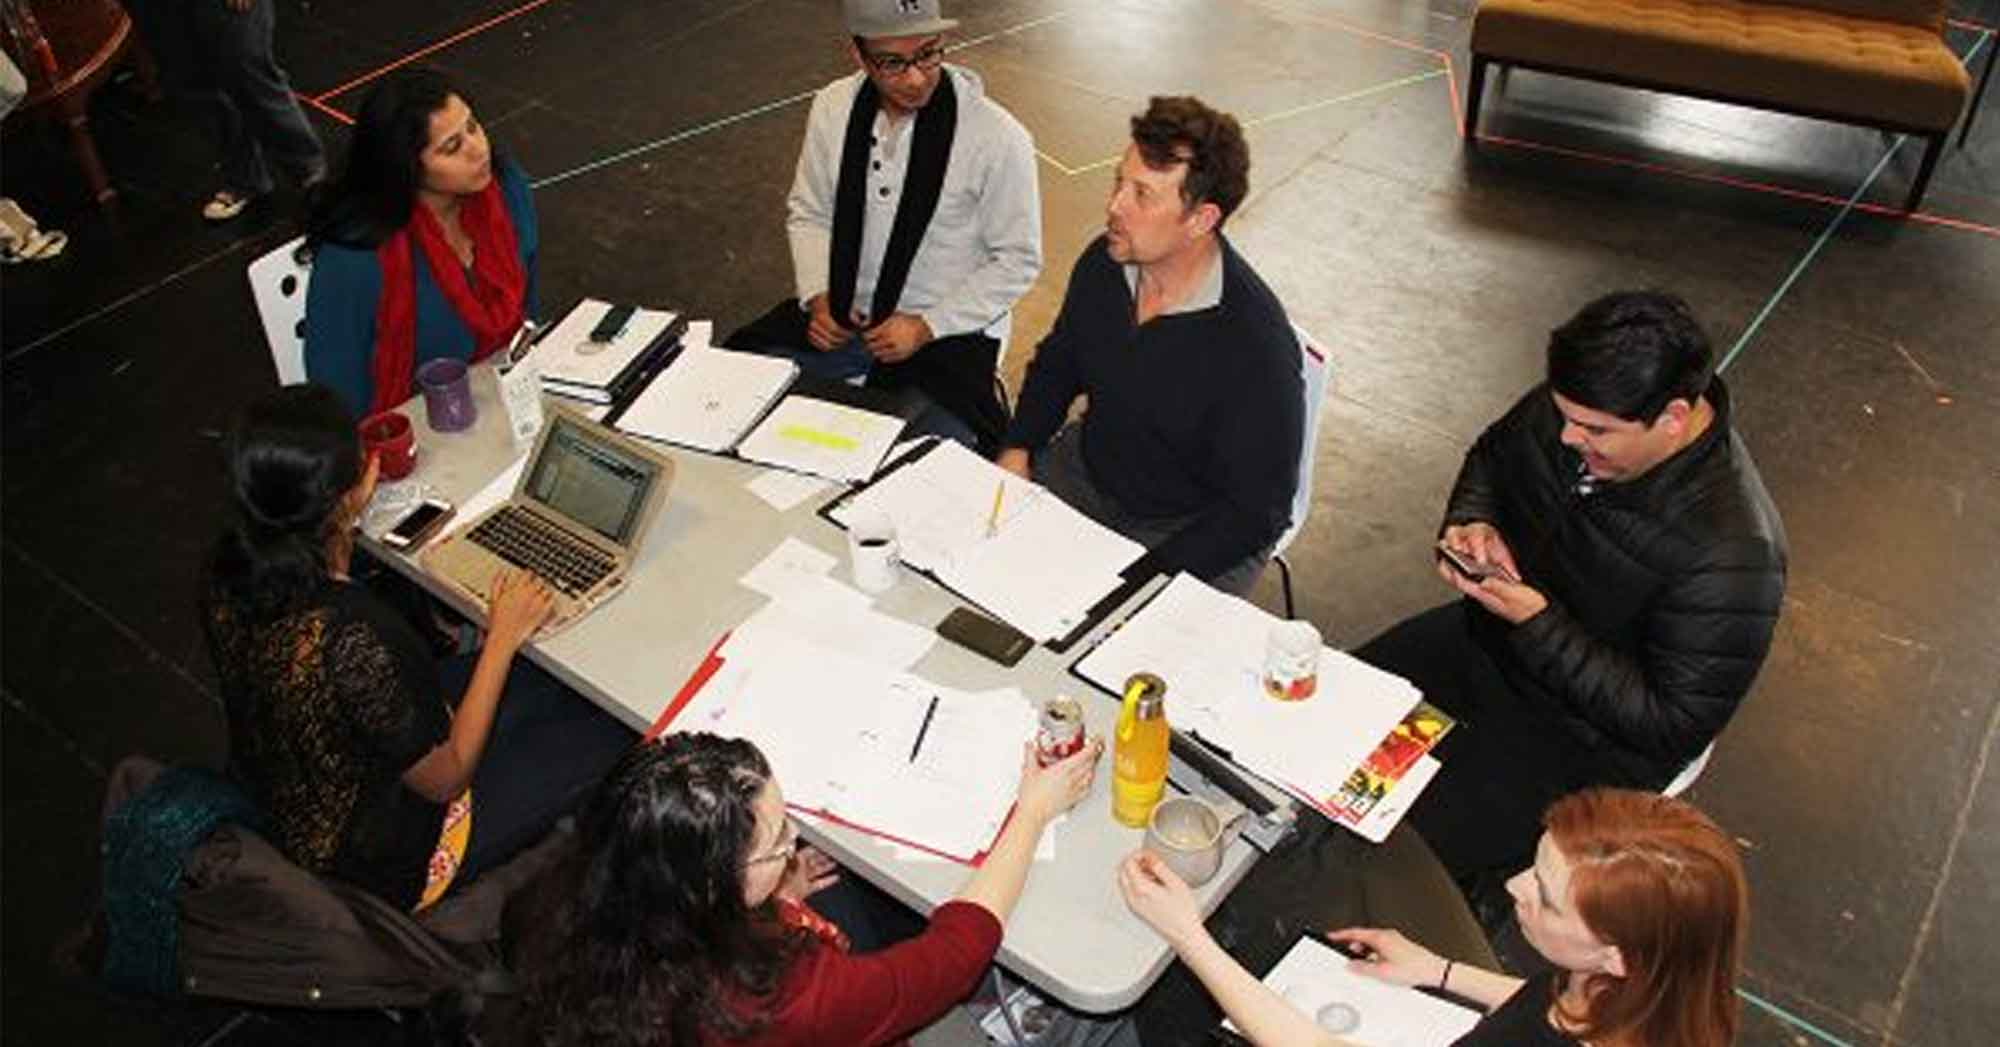 Group of artists sitting around a rectangular table discussing ideas